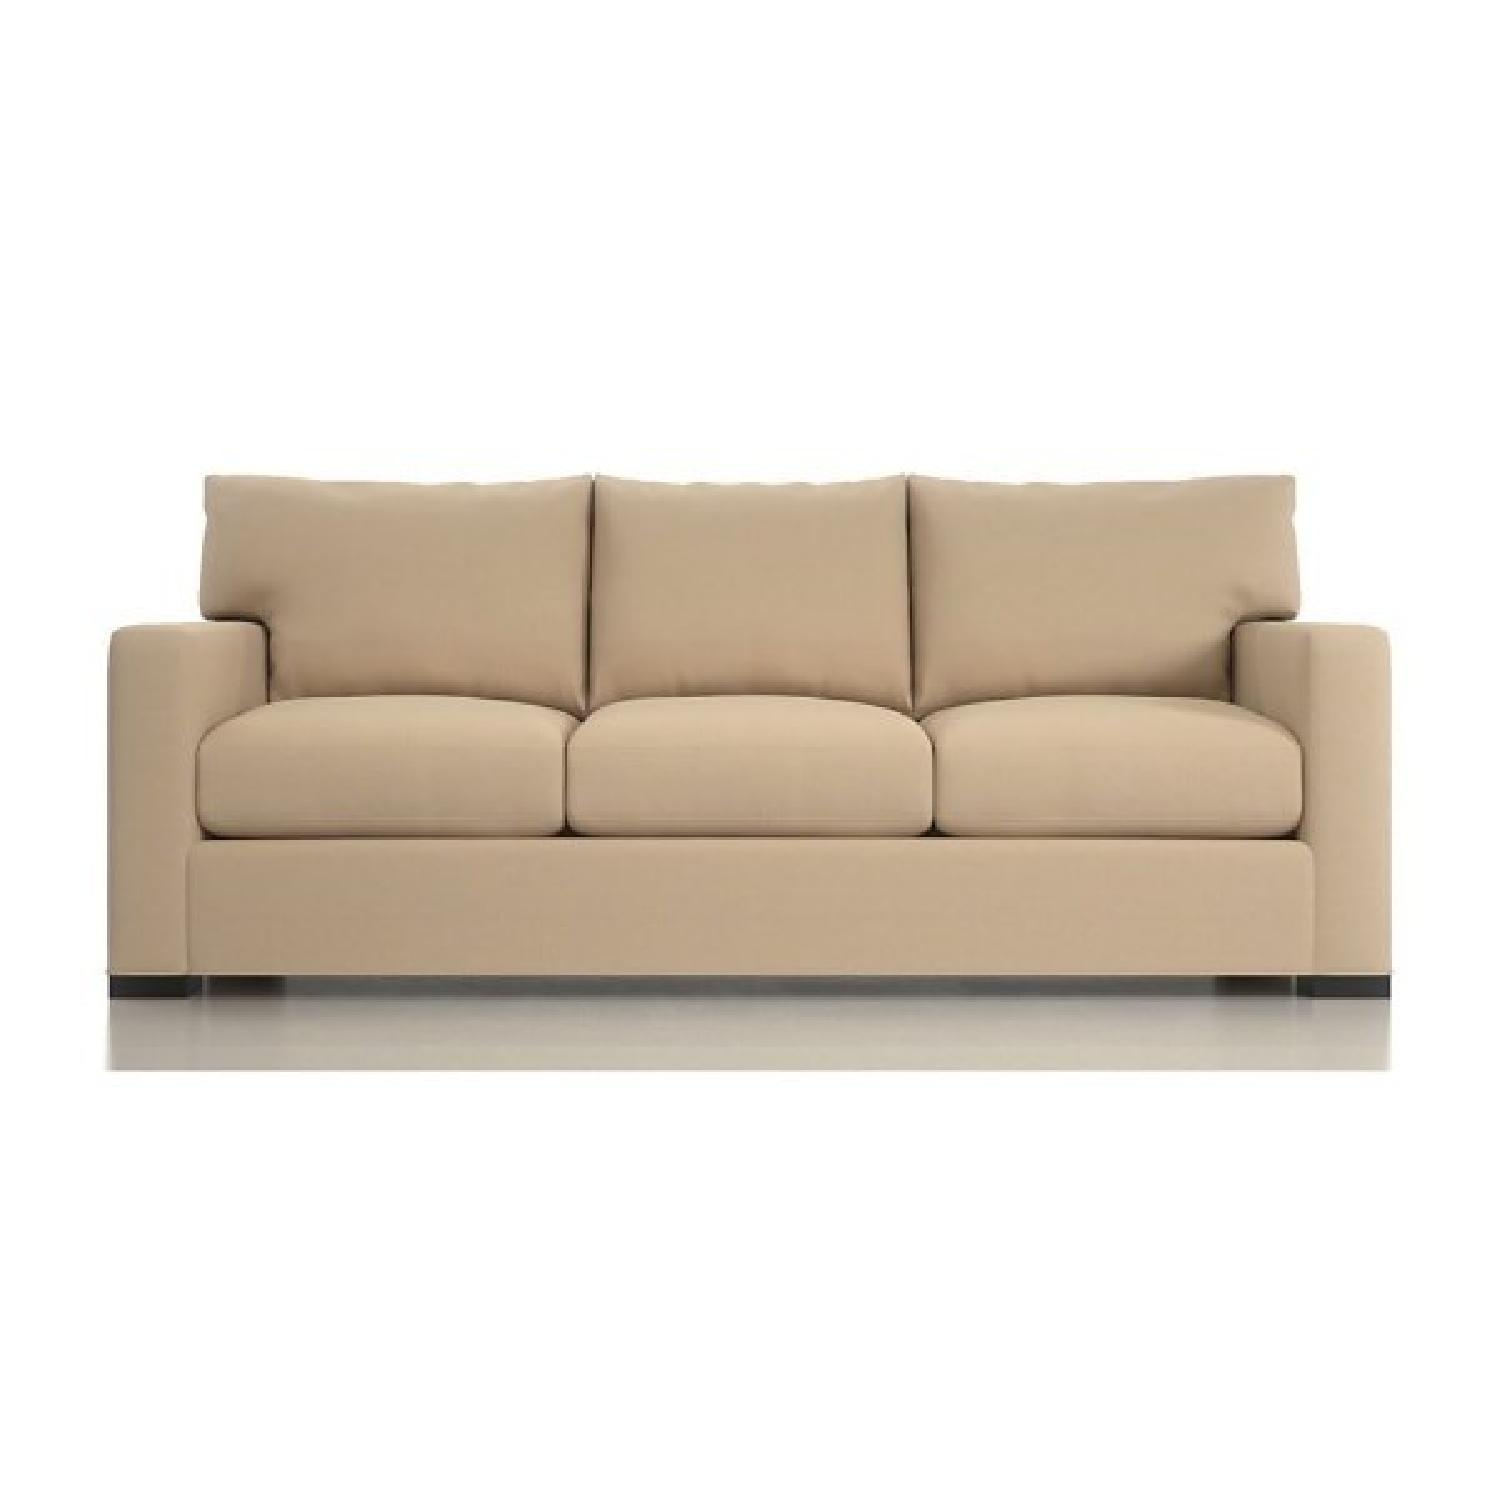 Crate & Barrel Axis II 3-Seater Sleeper Sofa